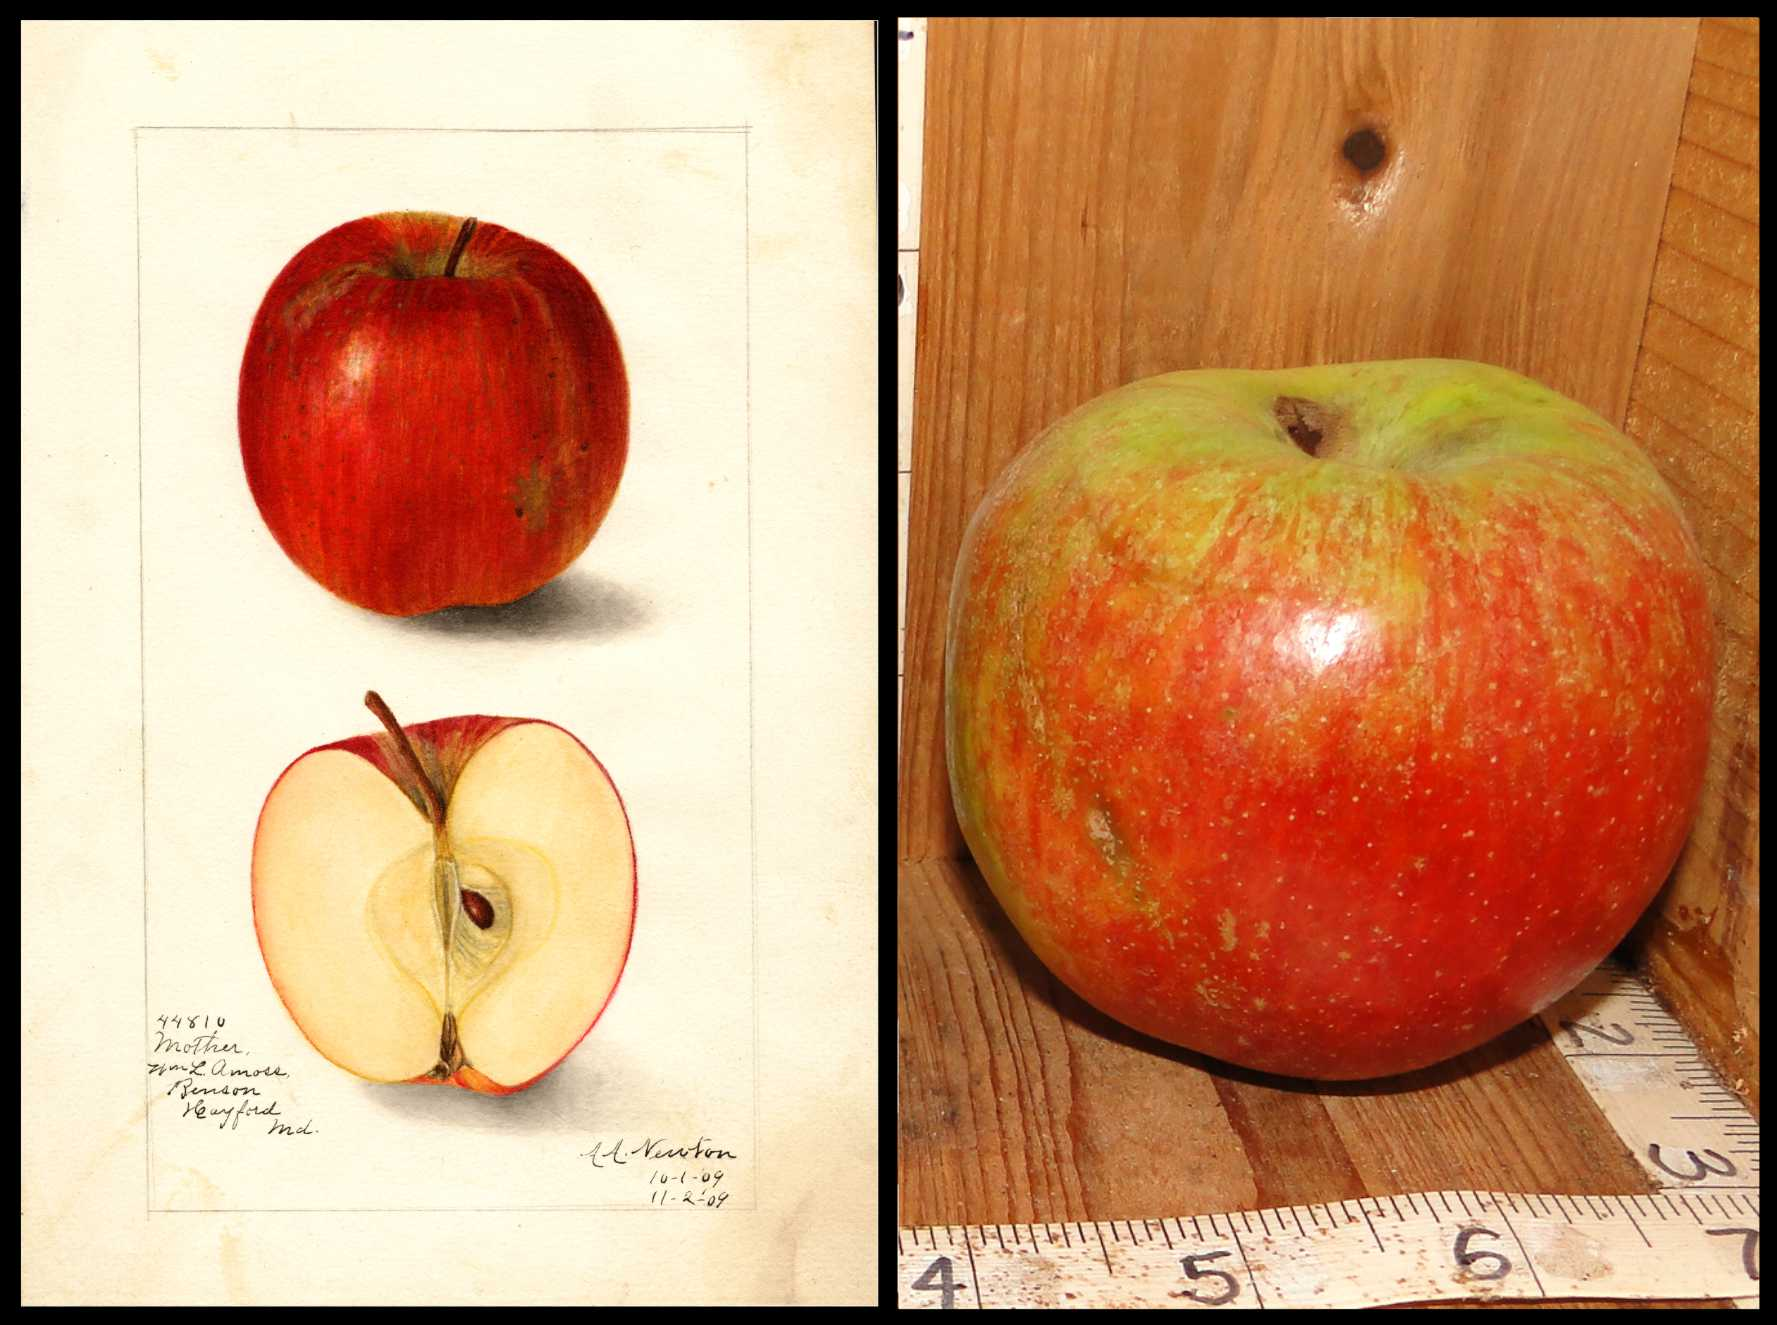 green apple with a solid red blush on the bottom two thirds of the apple